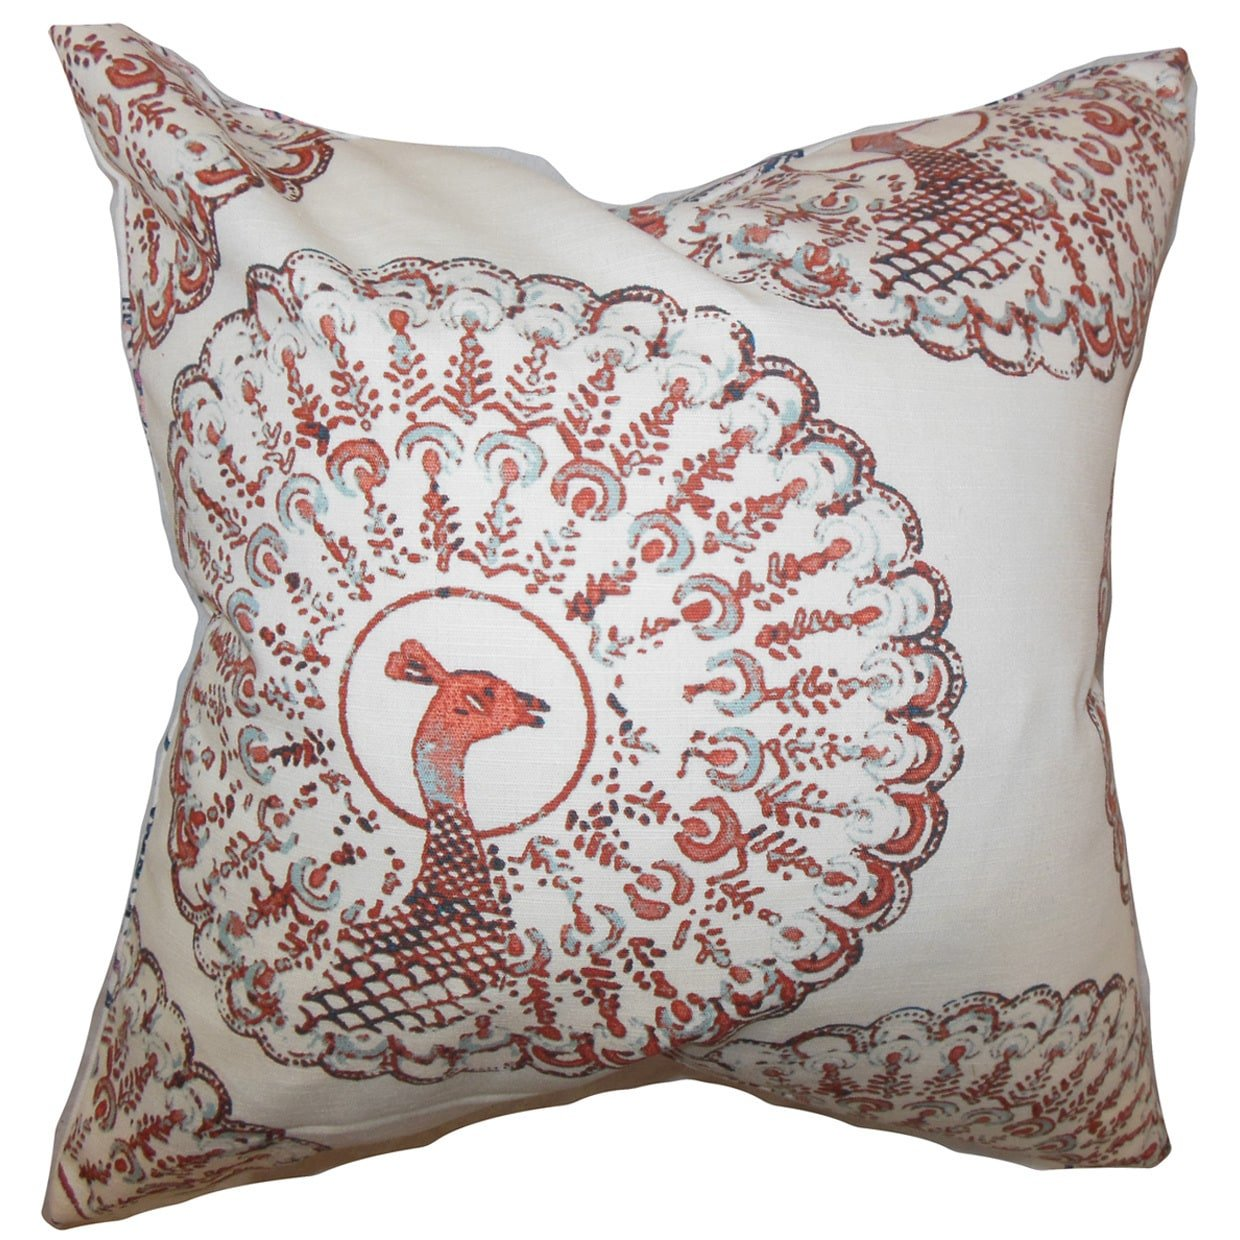 The Pillow Collection QUEEN-d-paboreal-coral-c95-l5 Coral Ieesha Animal Print Bedding Sham, Queen/20'' x 30''